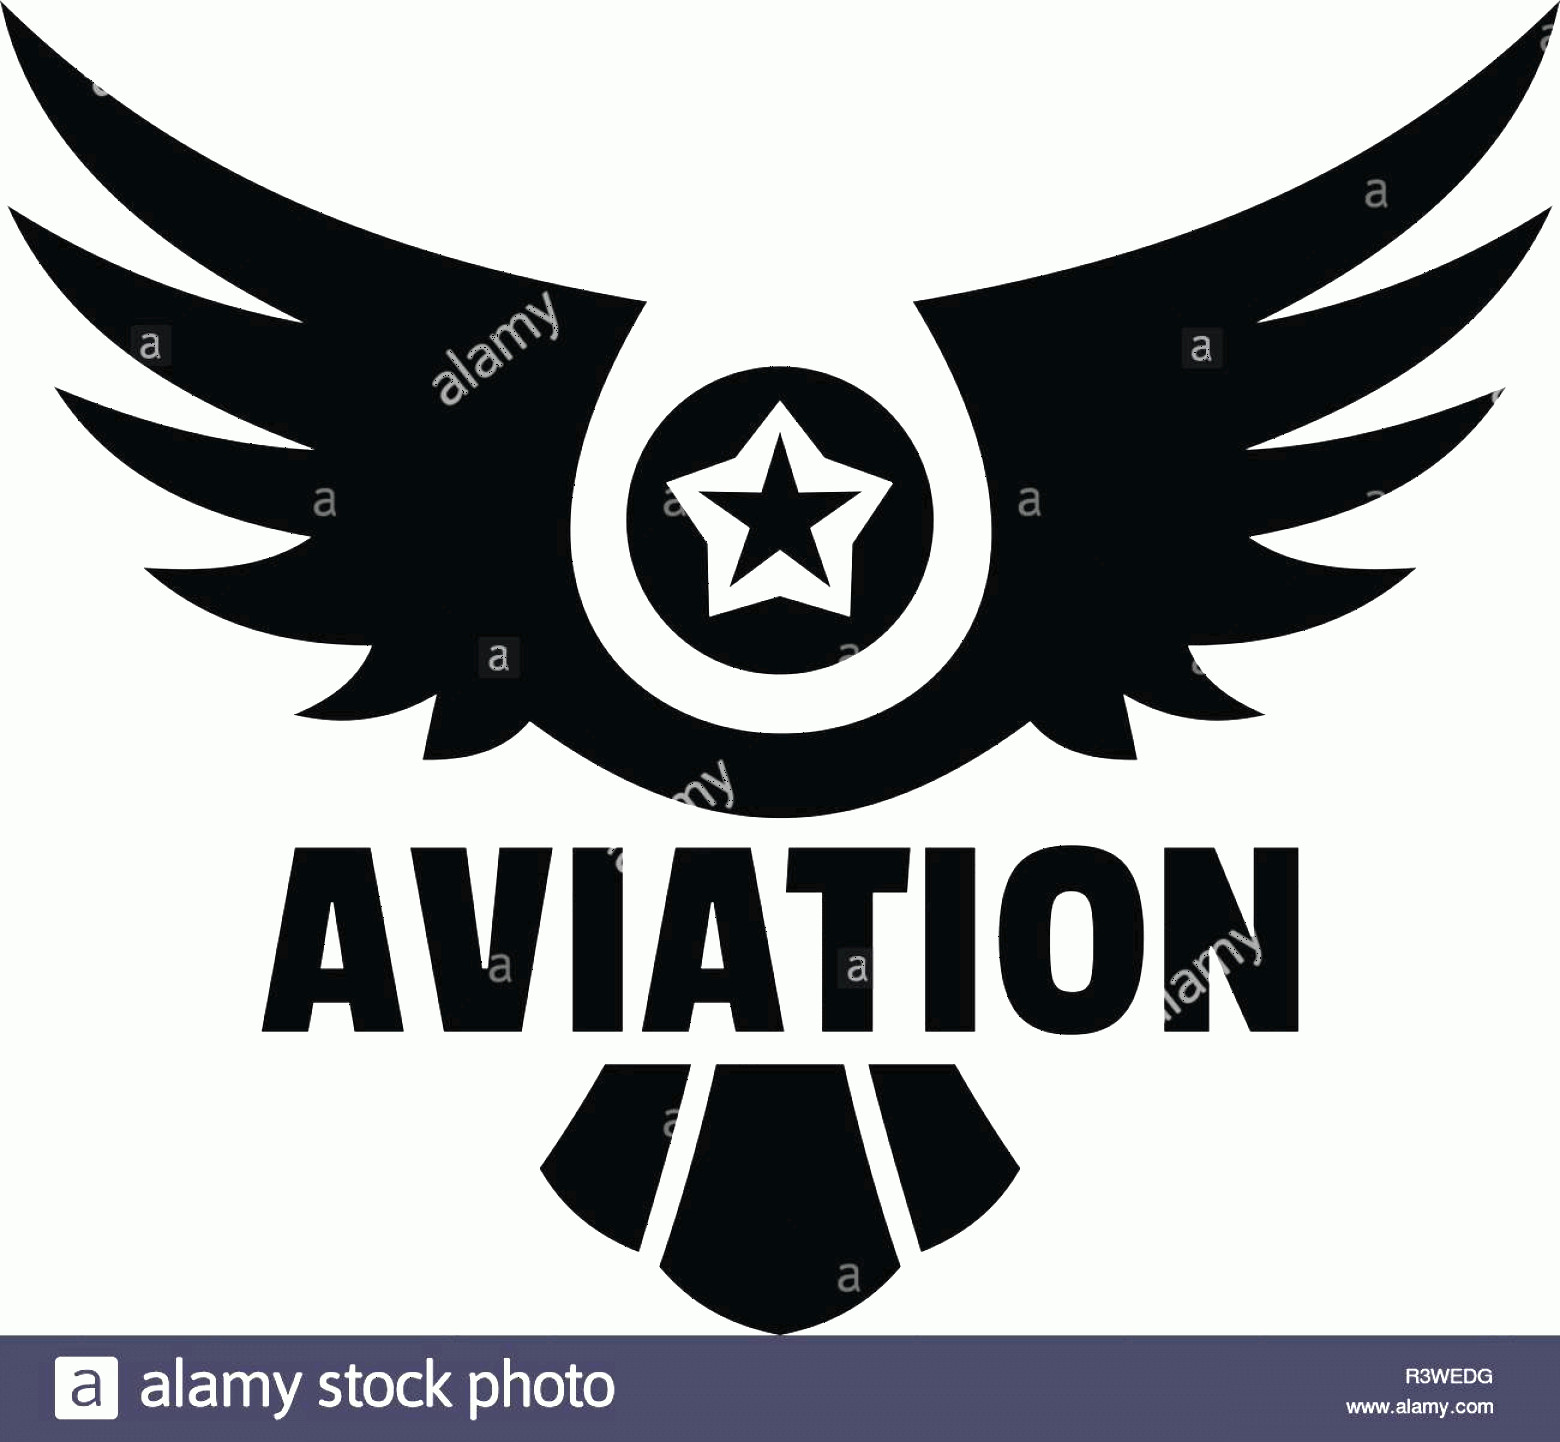 Aviation Vector Designs: Aviation Logo Simple Illustration Of Aviation Vector Logo For Web Design Isolated On White Background Image